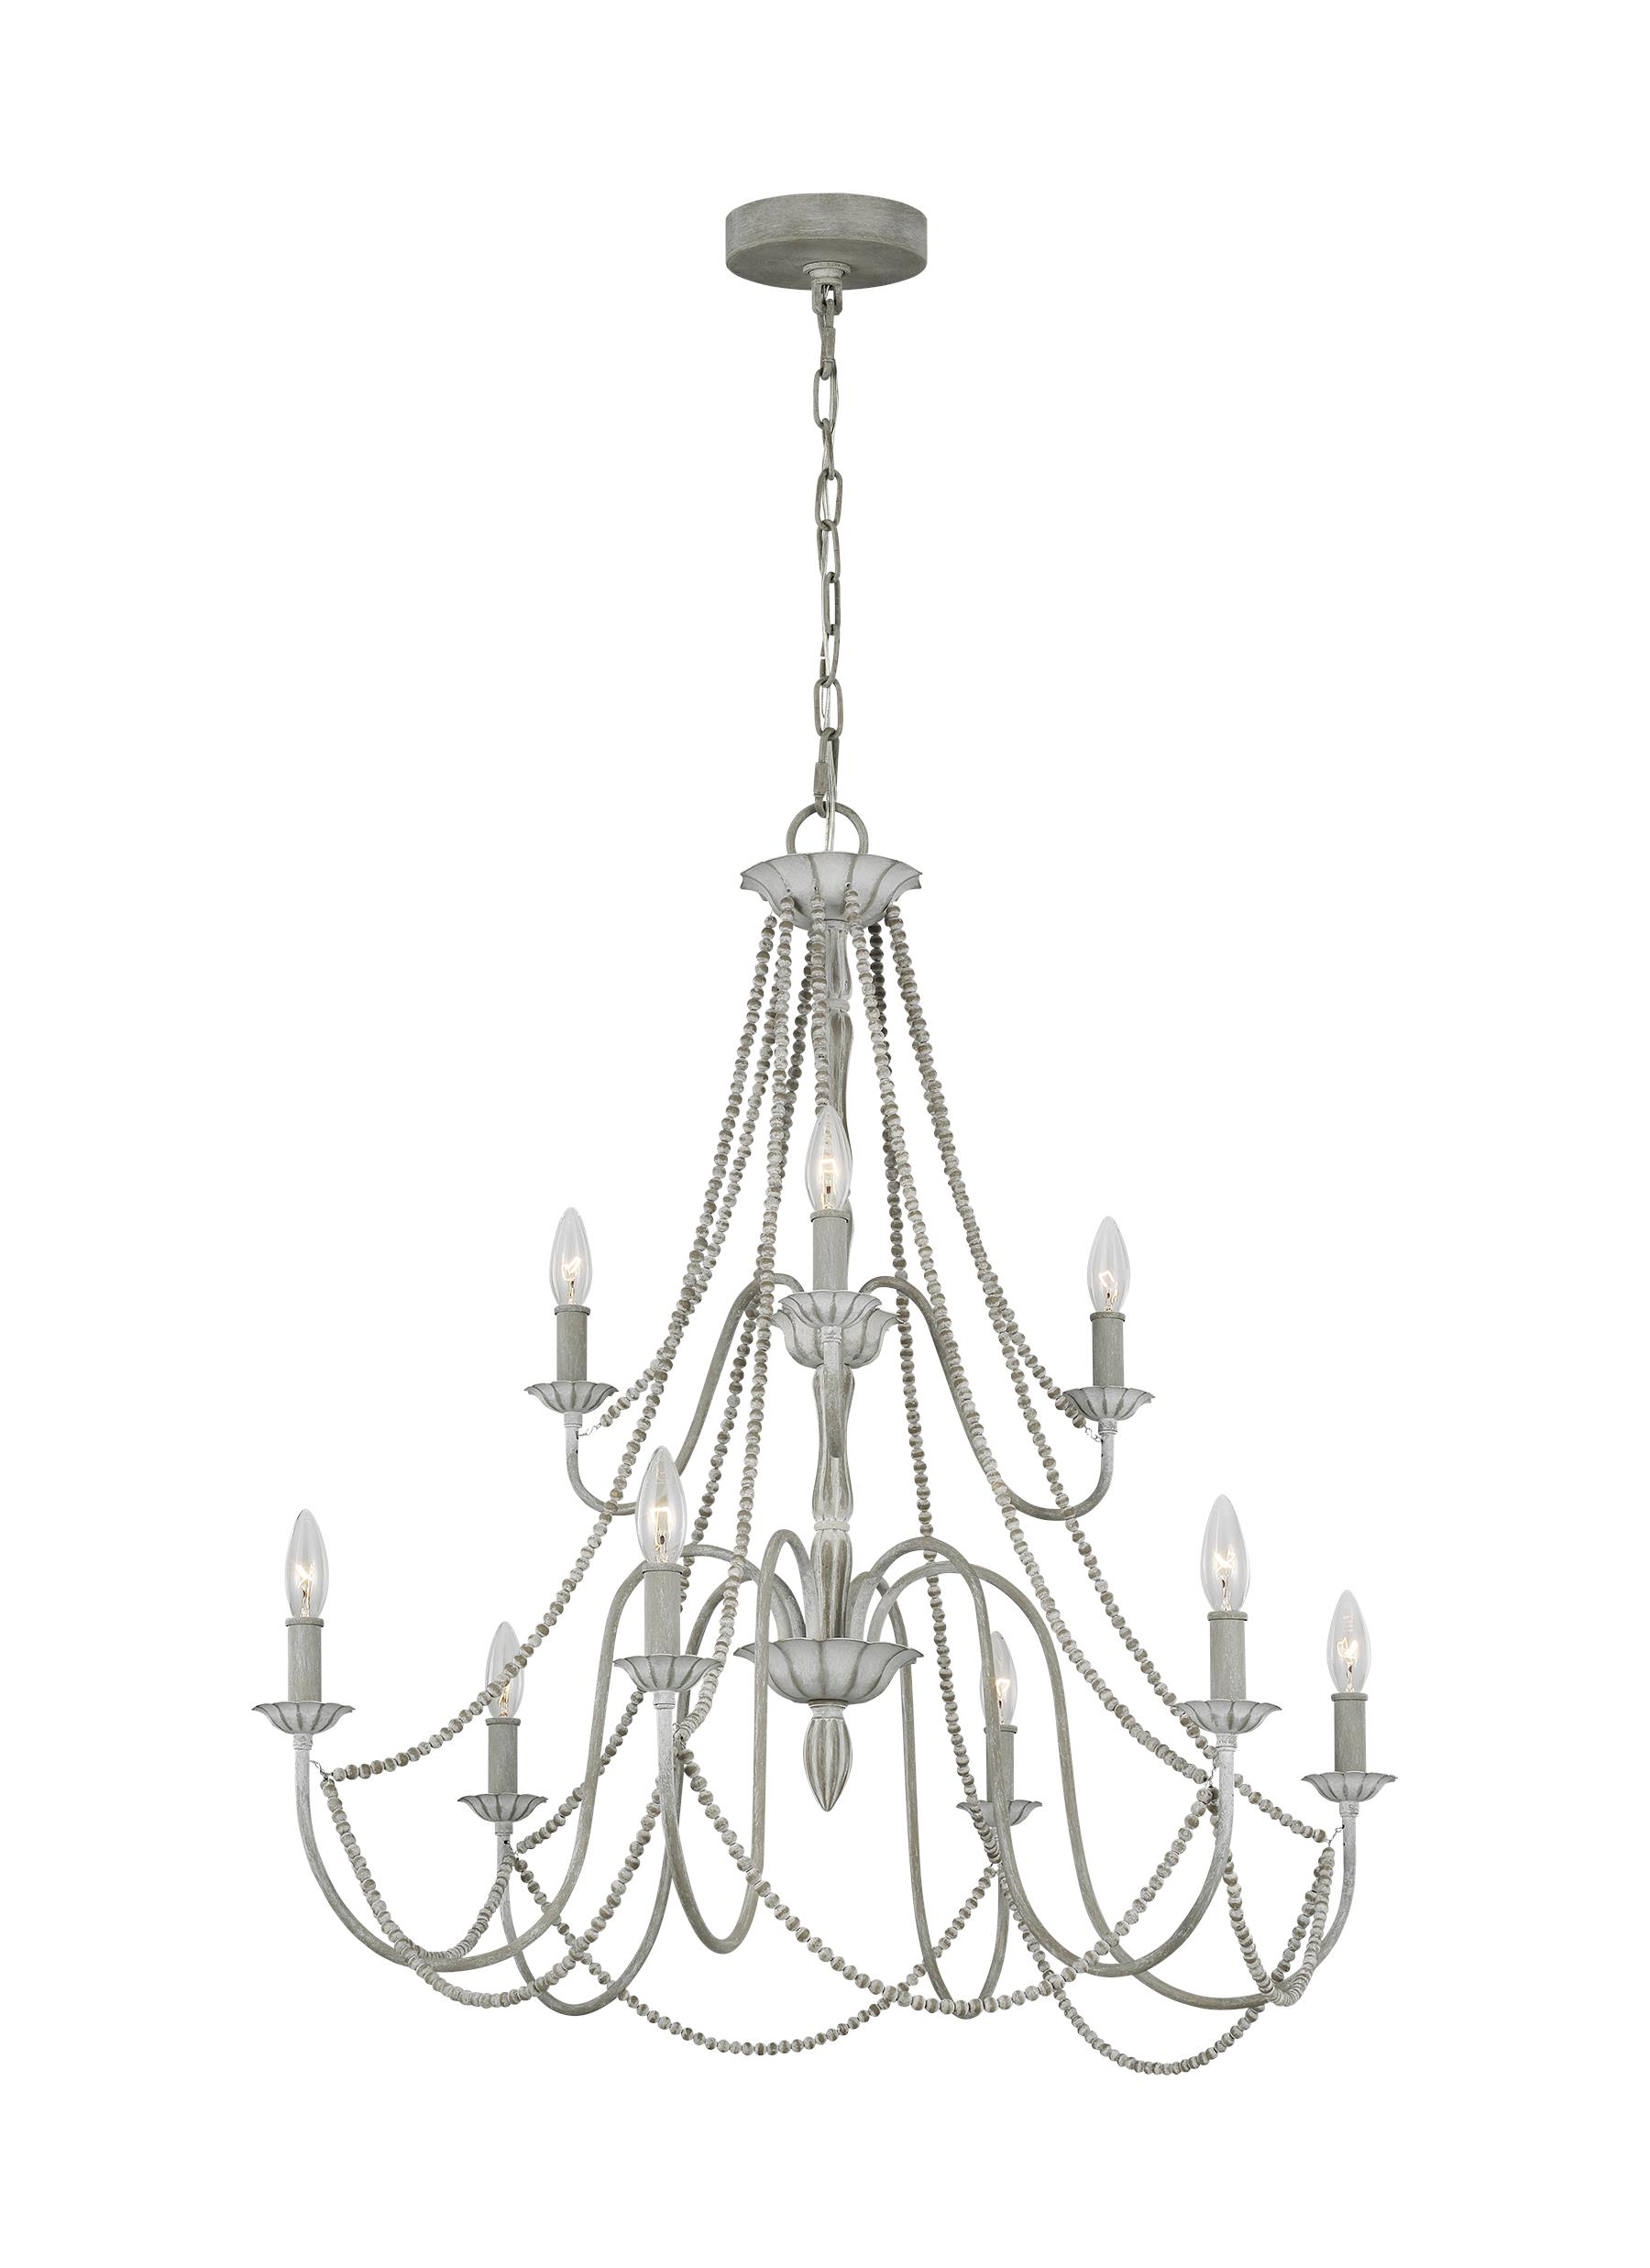 view charcoal nickel laura lights sorrento invt resp chandeliers ceiling ashley grey arm polished large chandelier nickelcharcoal uk